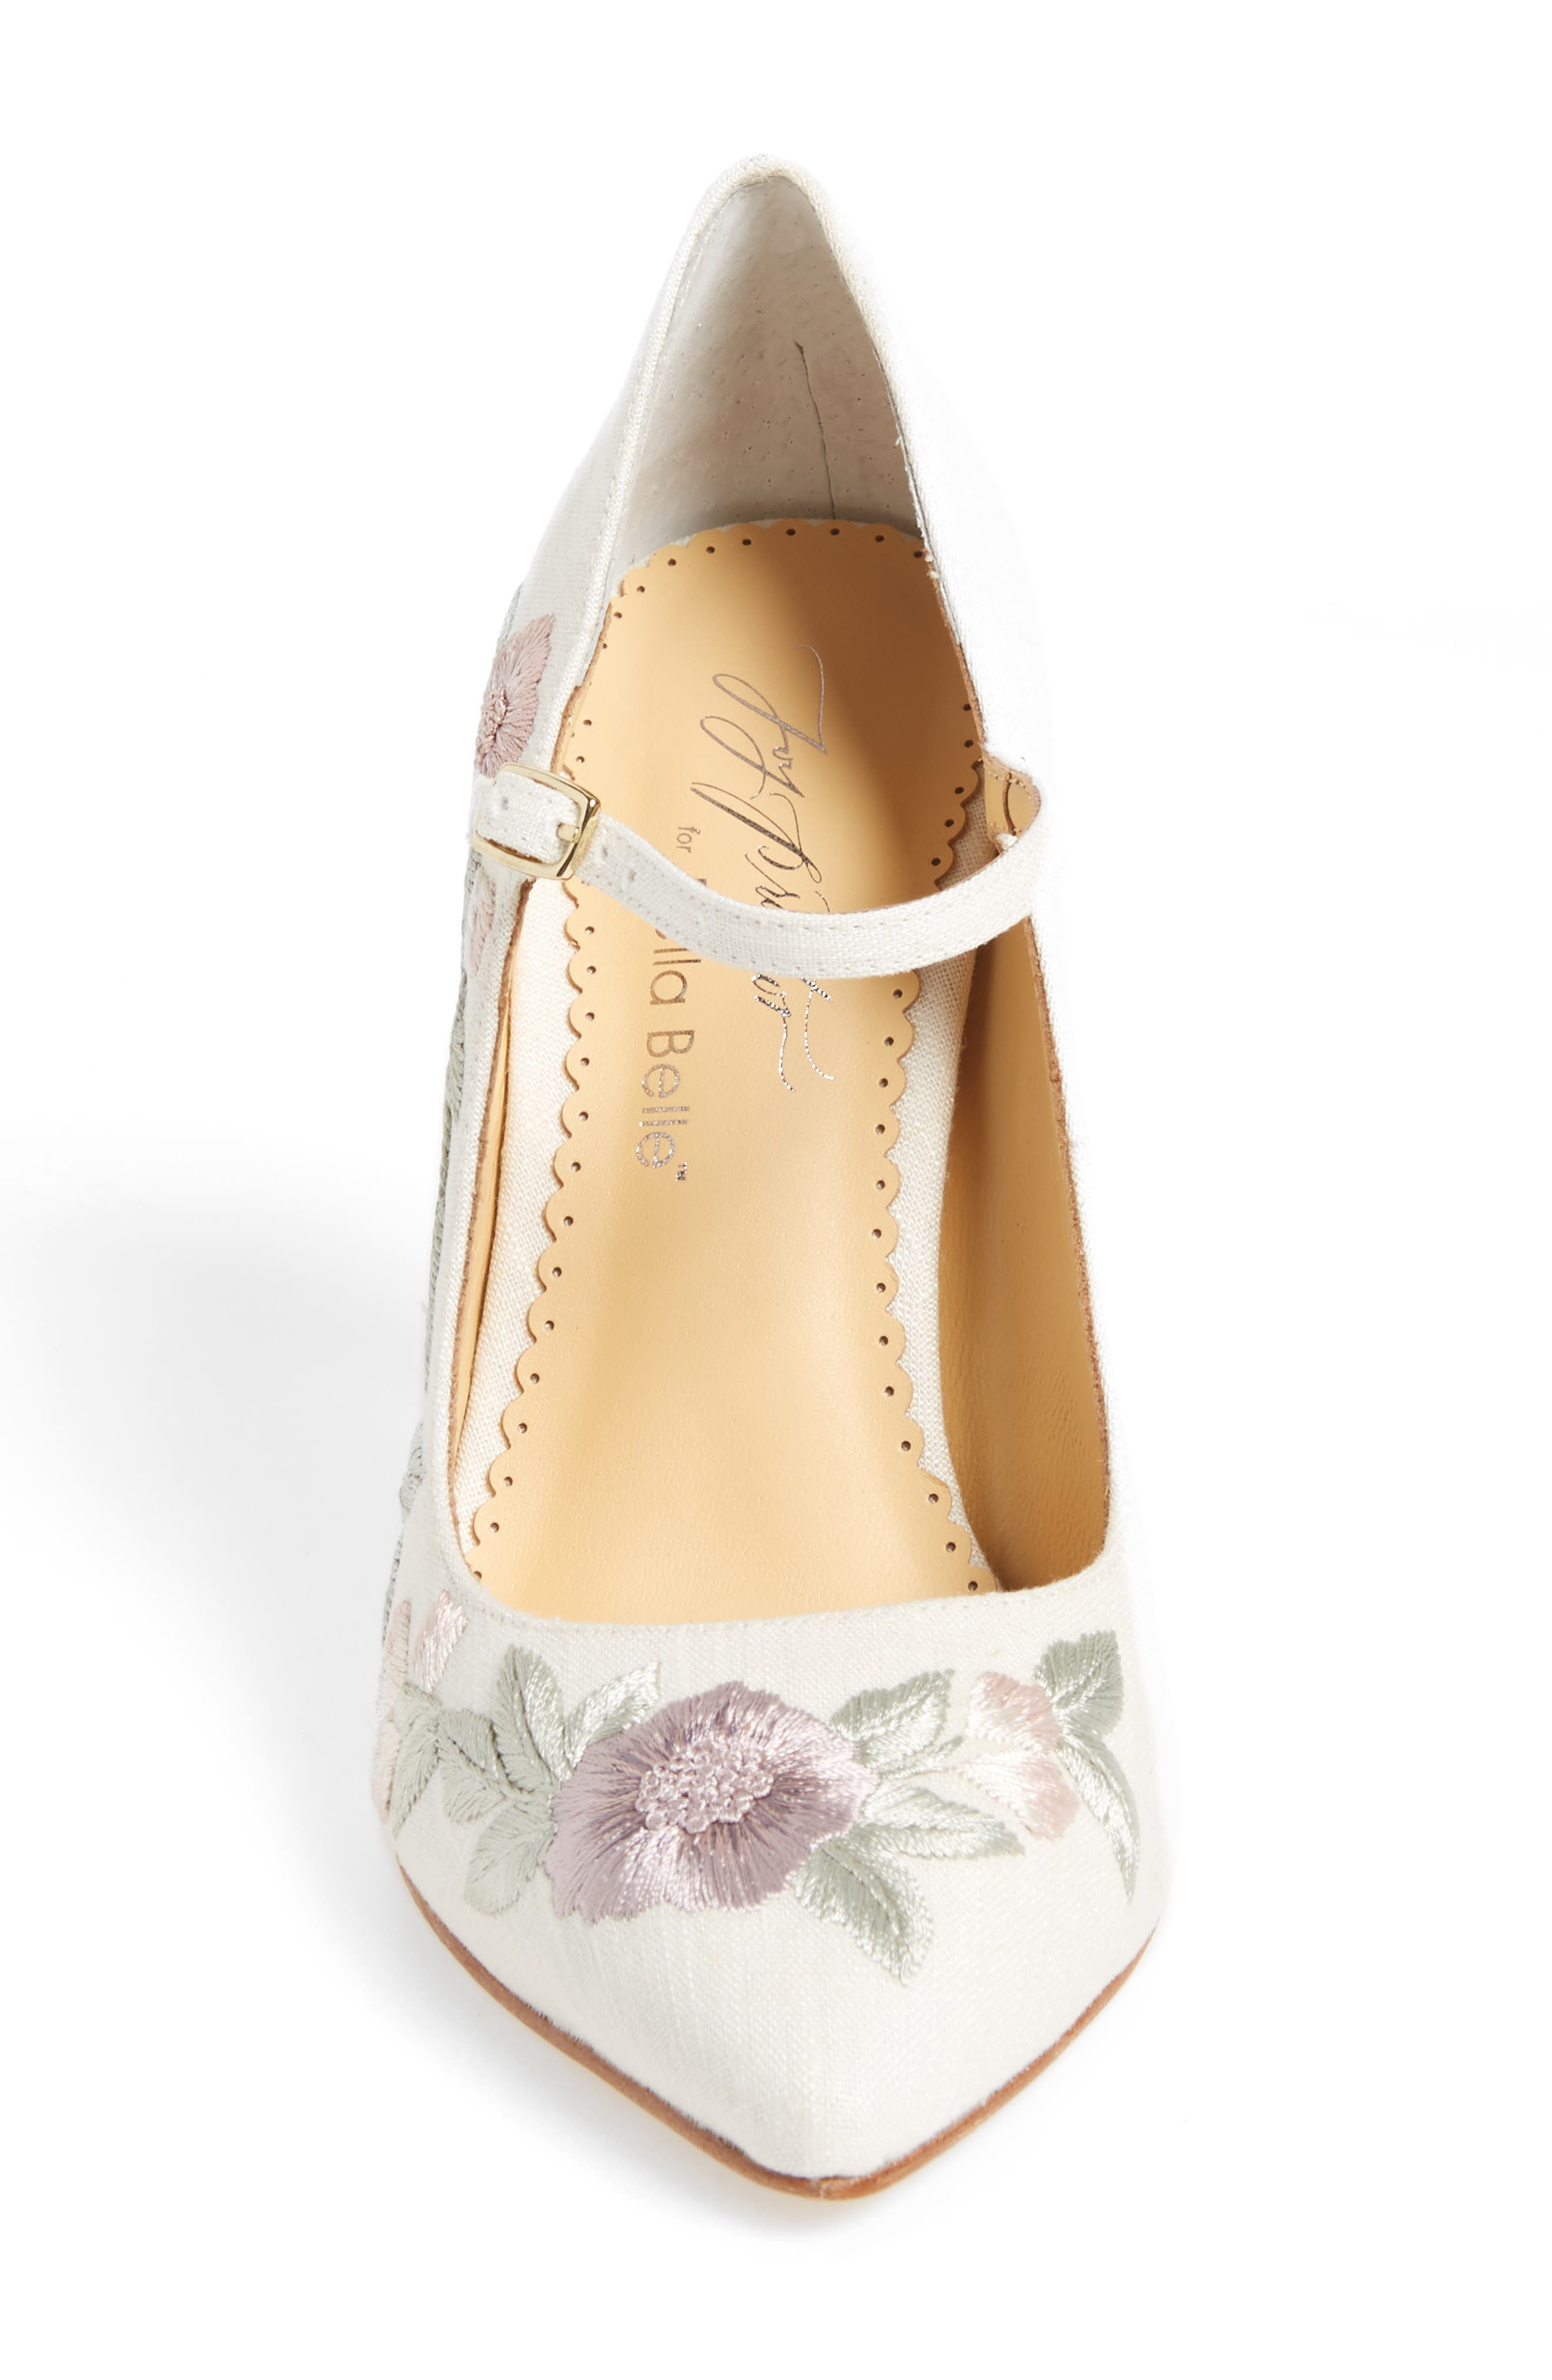 Adelaide Embroidered Pump,                             Alternate thumbnail 4, color,                             LIGHT FLAX FABRIC